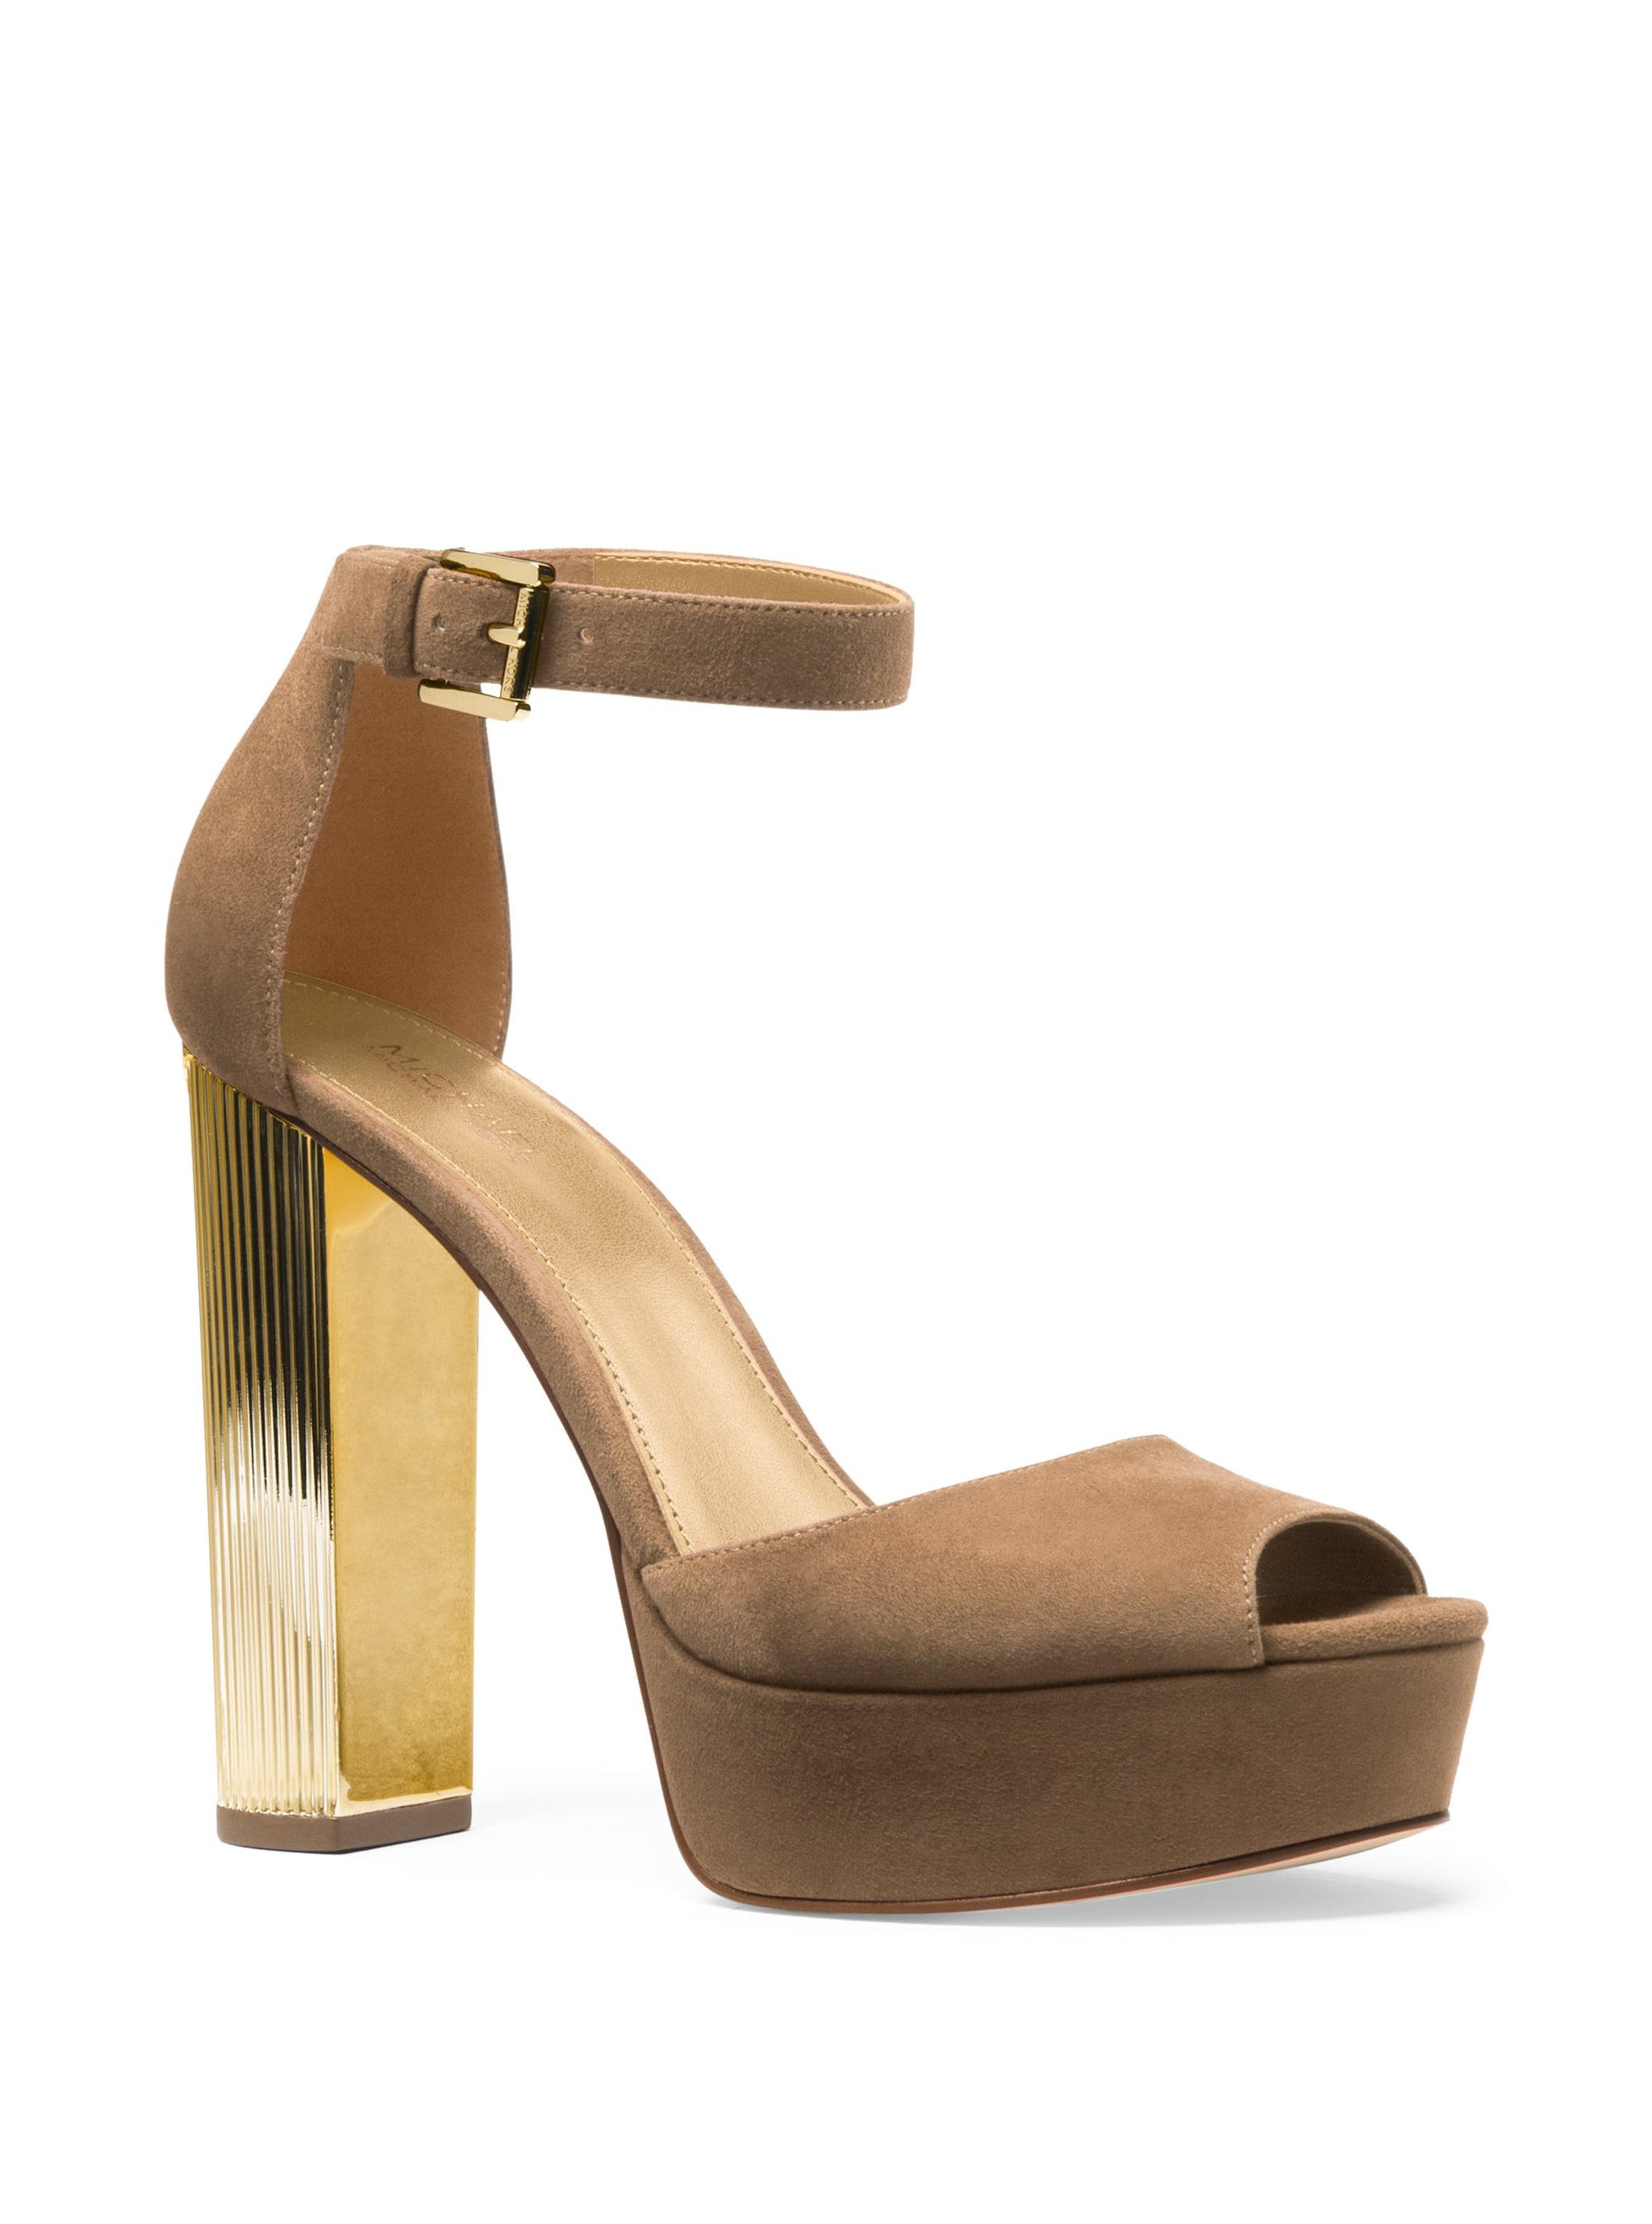 126146bc92a1 MICHAEL Michael Kors. Women s Natural Paloma Suede Platform Dress Sandals